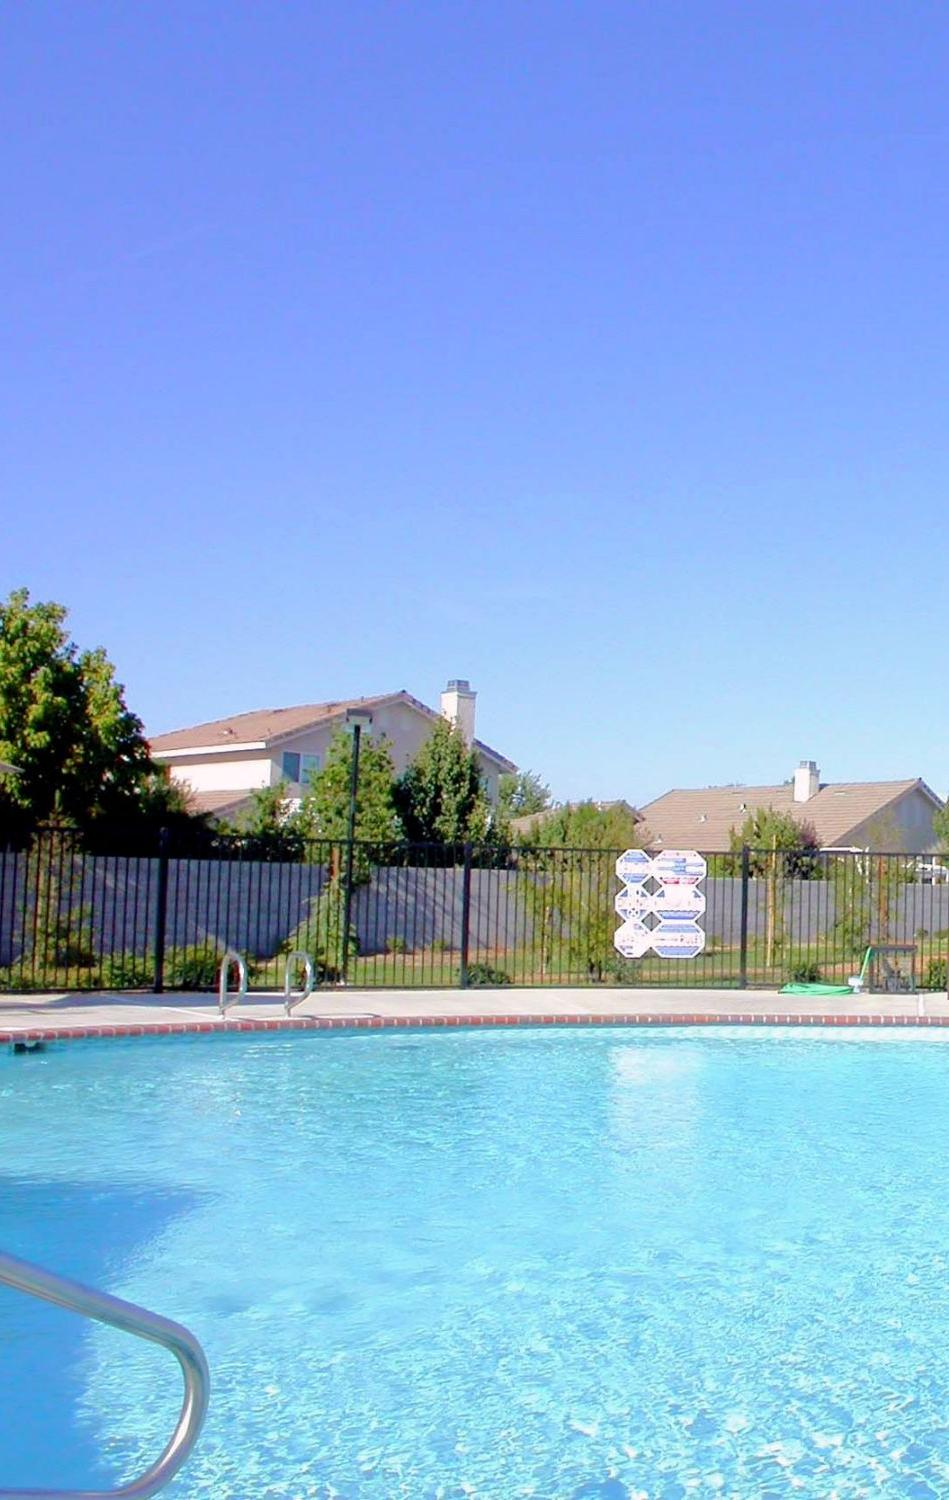 Apartments for Rent in Clovis, CA | Coventry Cove - Home